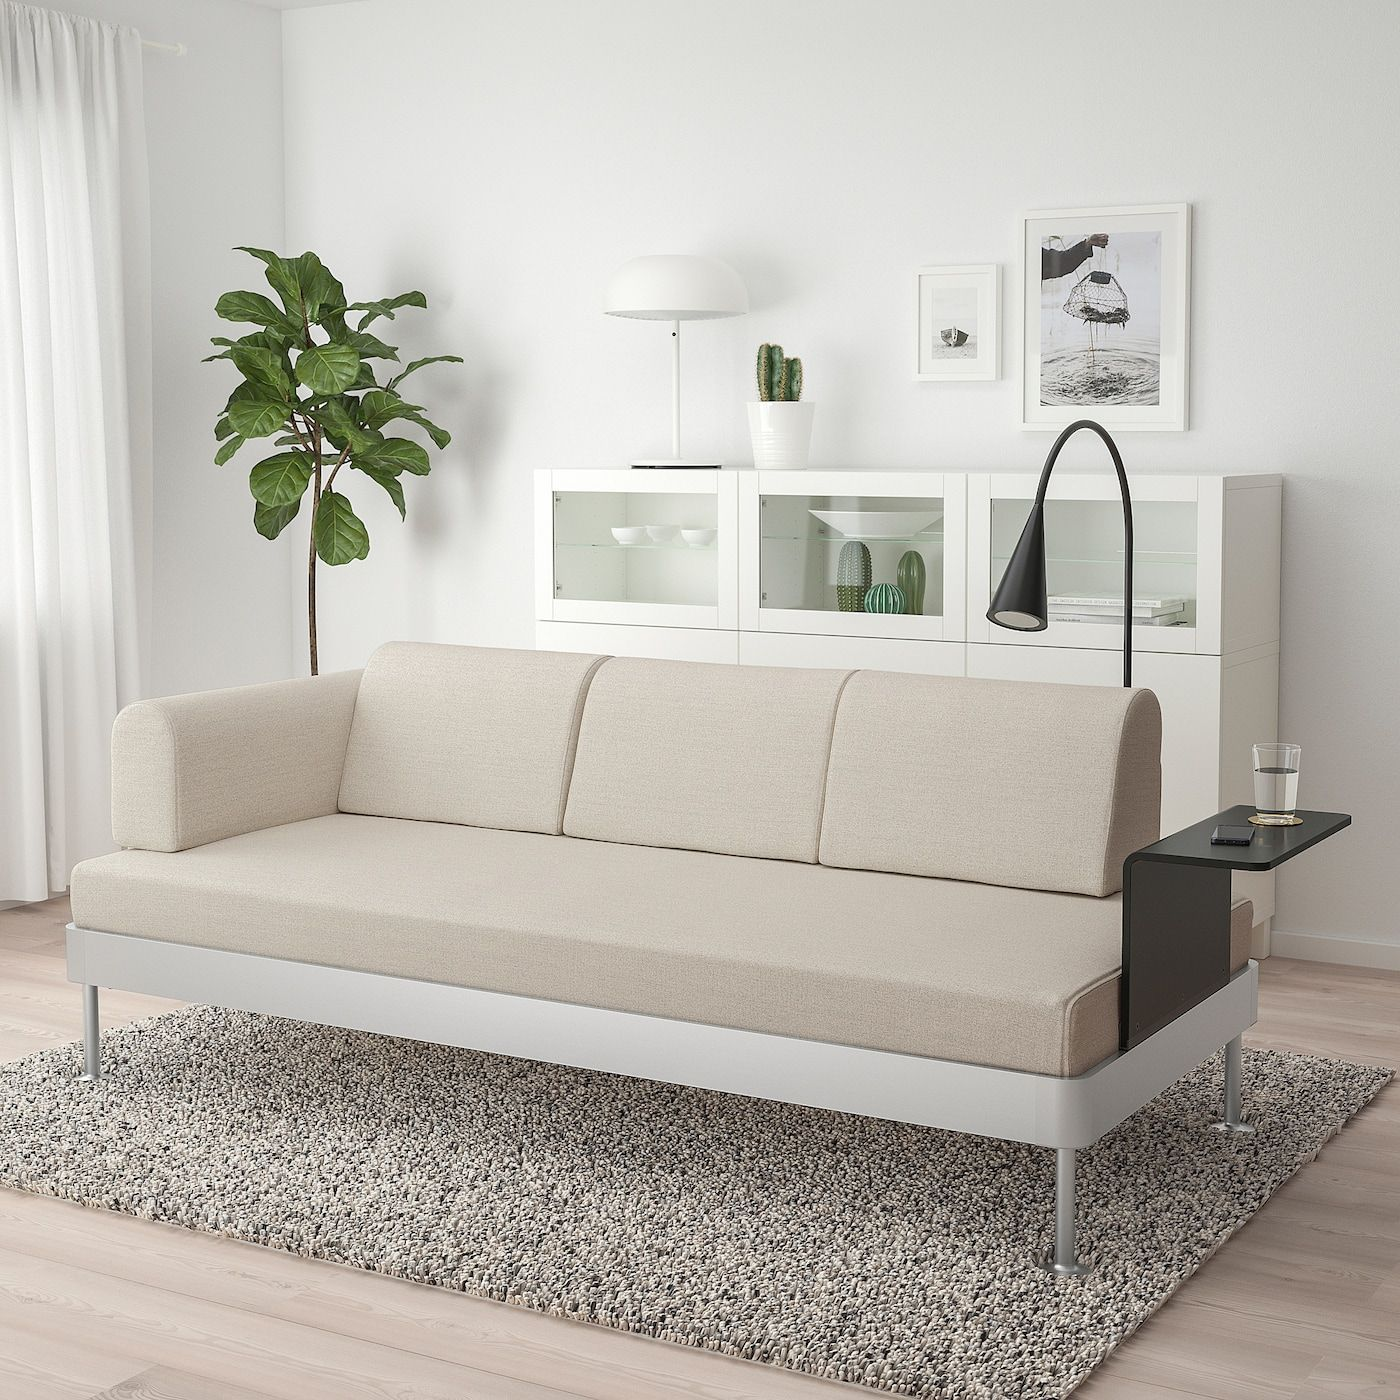 Ikea Delaktig Sofa With Side Table And Lamp Gunnared Beige Sofa Ikea Cushions On Sofa